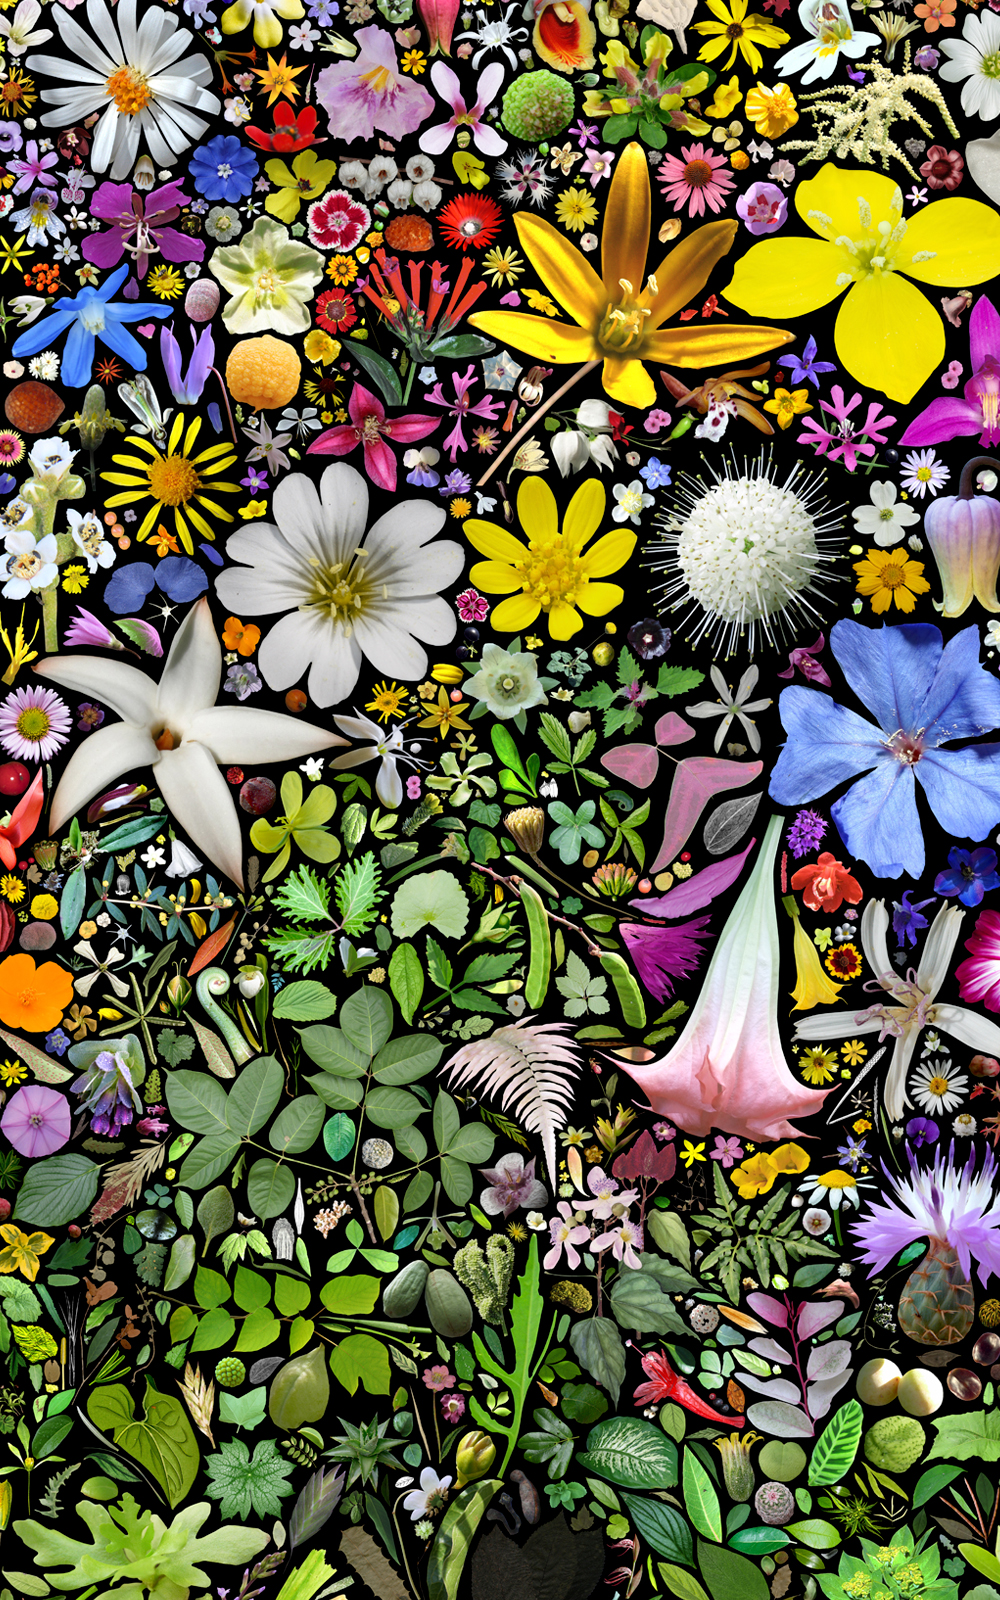 Case Simmons, Simmons & Burke, Plant Collection Palette #1, Digital Collage, Digital Art, Photoshop Collage, Contemporary Collage, Case Simmons Art, Collage Fine Art, Plant Art, Digital Flower Art, Collection Art, Archive Art, Kohn Gallery